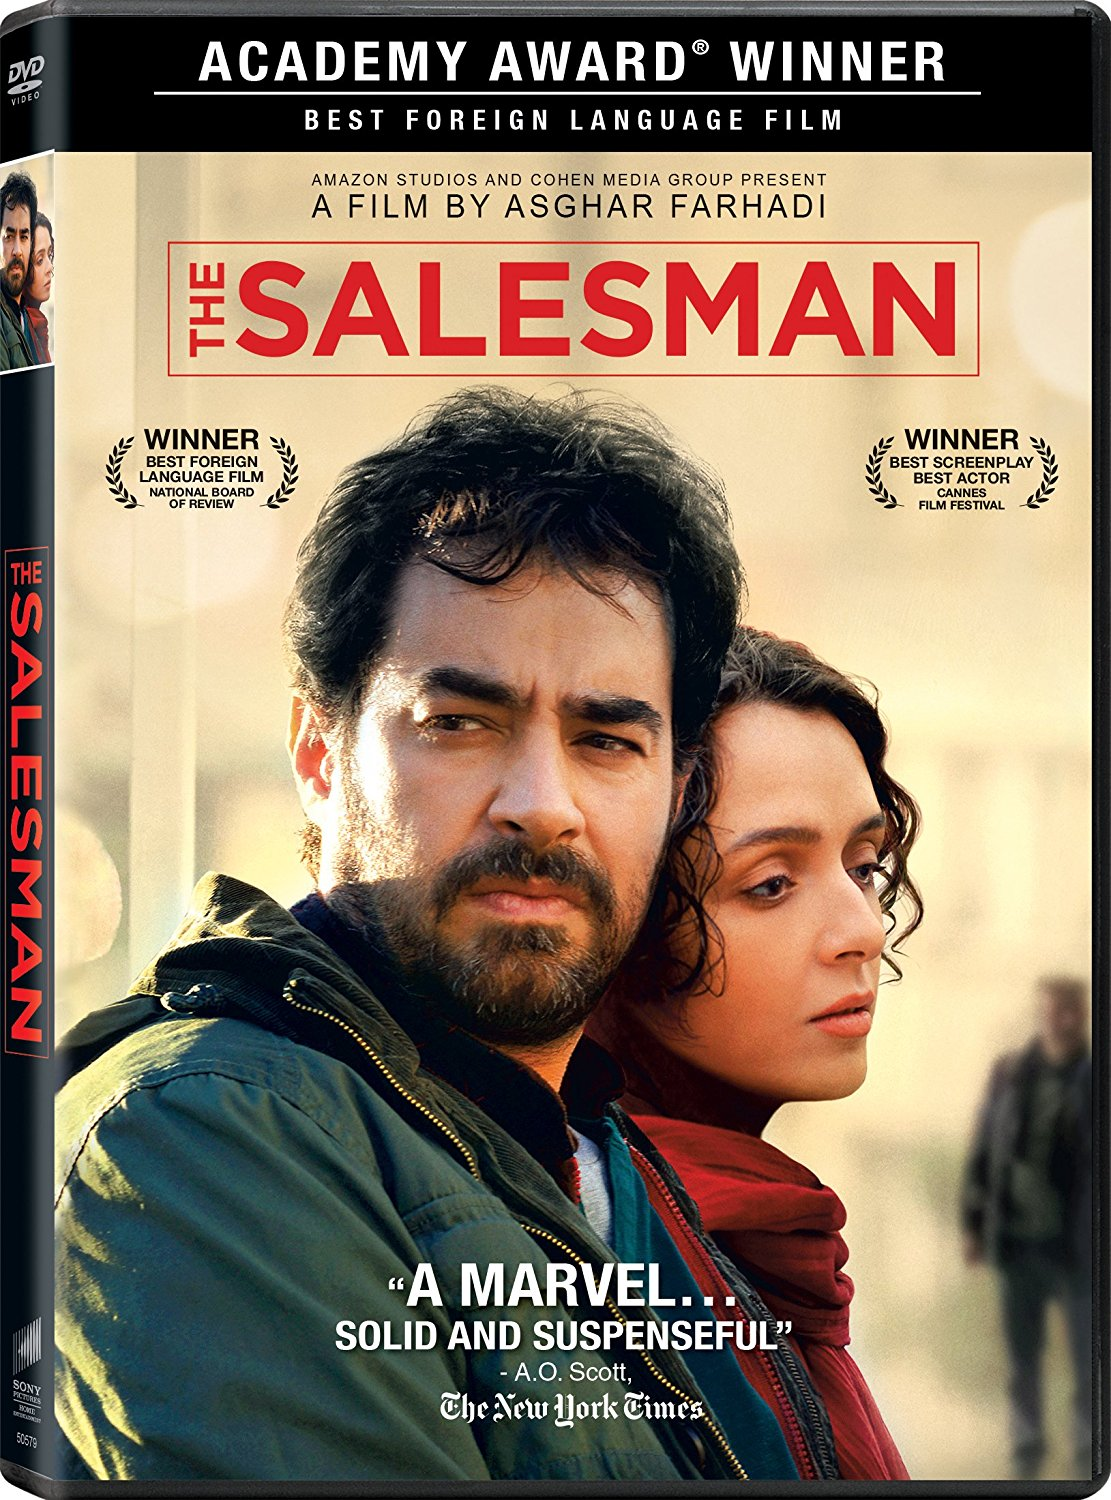 thesalesman - DVD and Blu-ray Releases: May 2, 2017